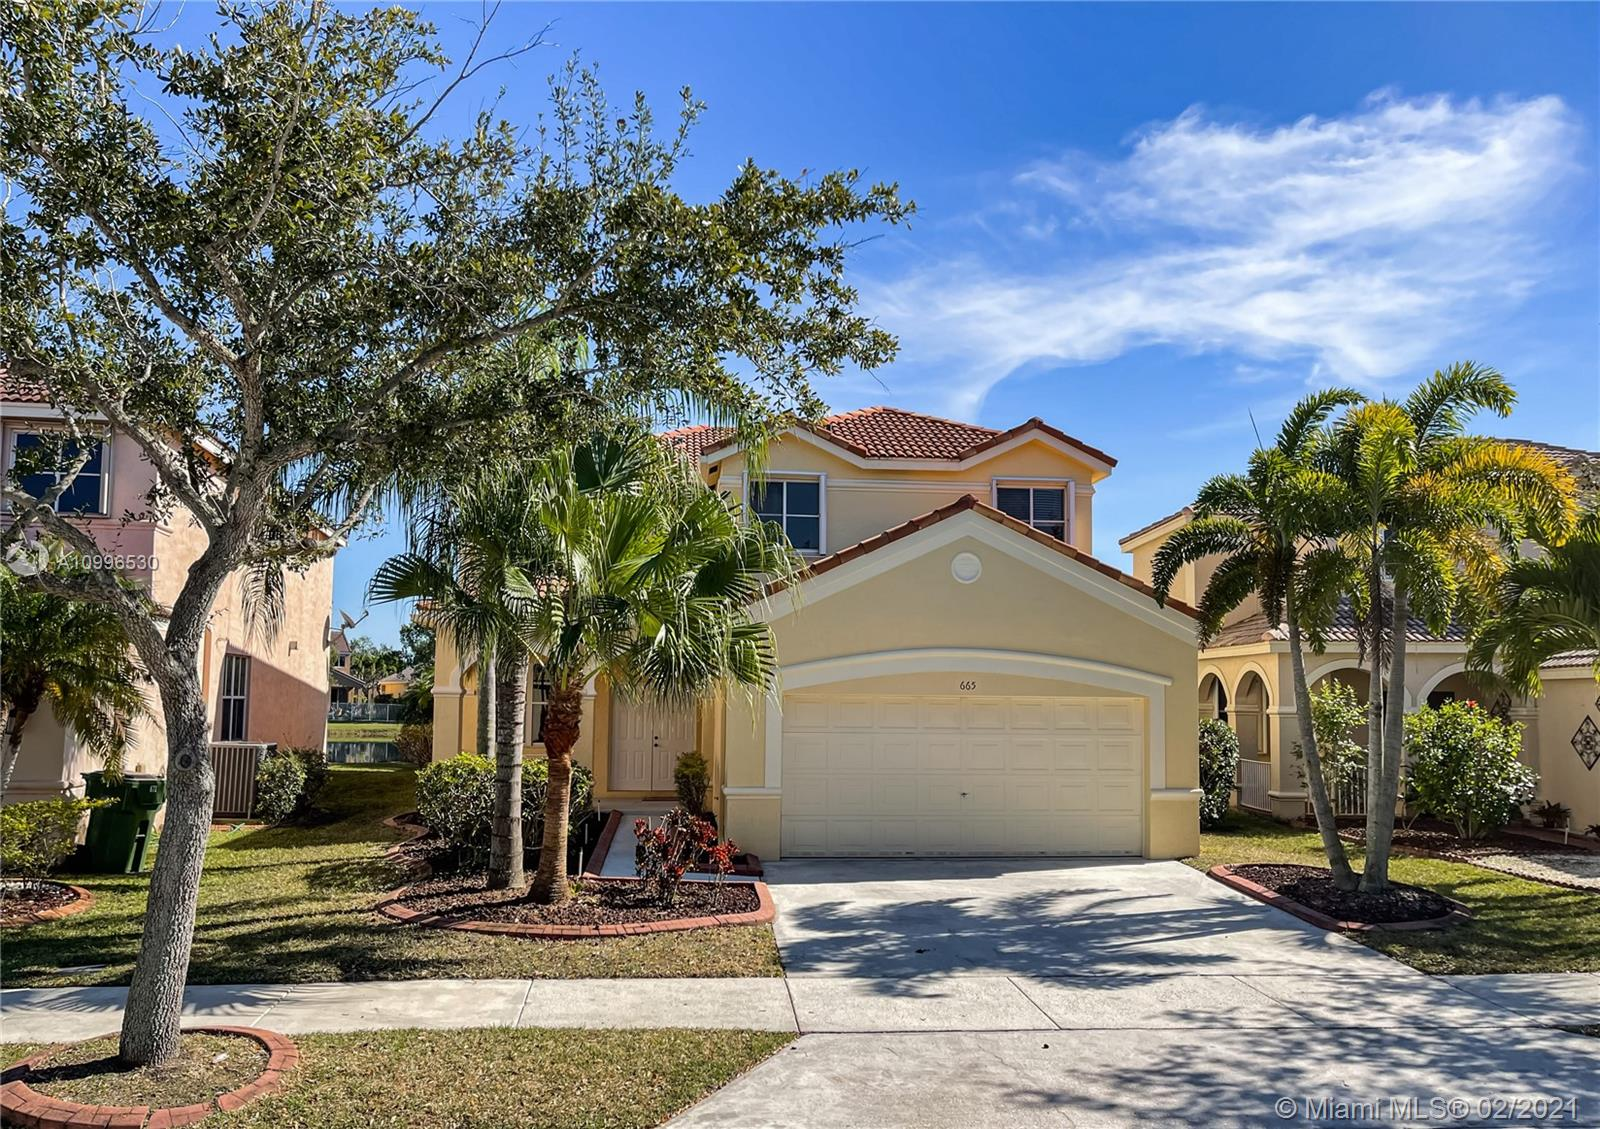 Great 5bed and 3.5 bath lakefront home with a pool at the desirable The Meadows. Updated kitchen with all stainless steel appliances and all hardwood floors upstairs. This house has a great floor plan with a good size master suite, master bathroom has dual sink, lots of cabinet space, shower and separated tub.